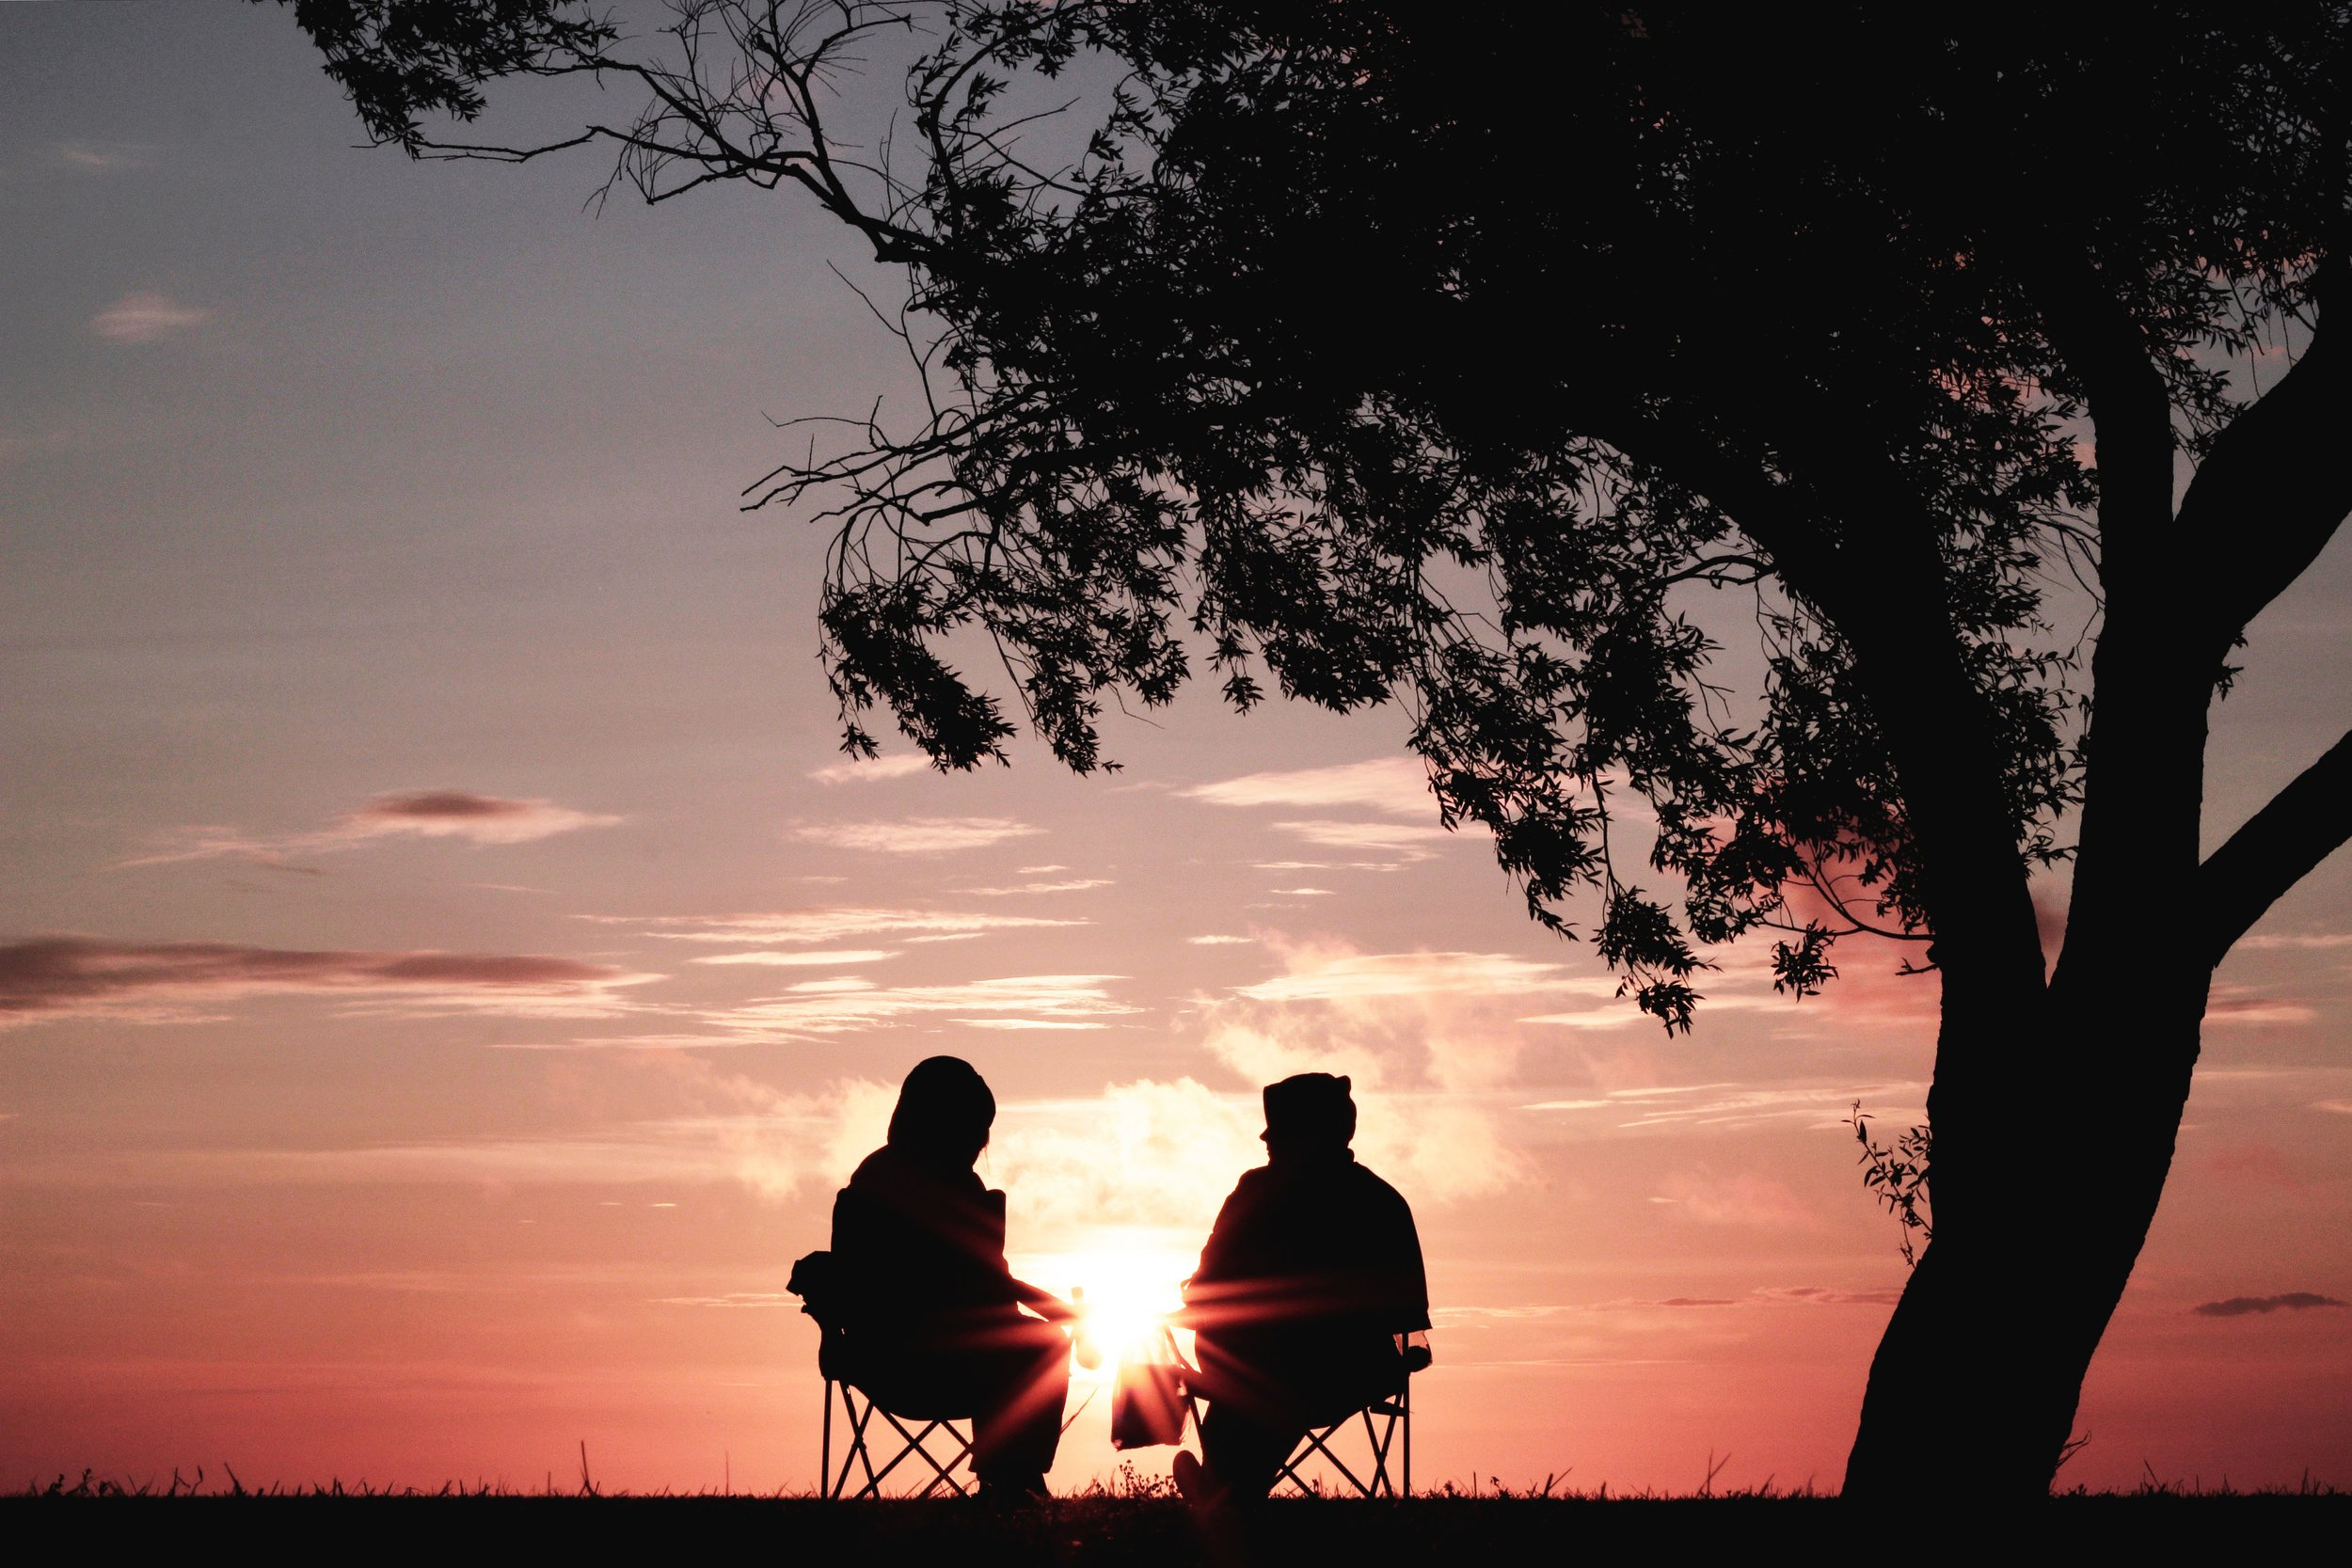 Relationships - Some of the most important spiritual work we engage in, and often some of the most challenging work, is in relationships, both romantic and platonic.